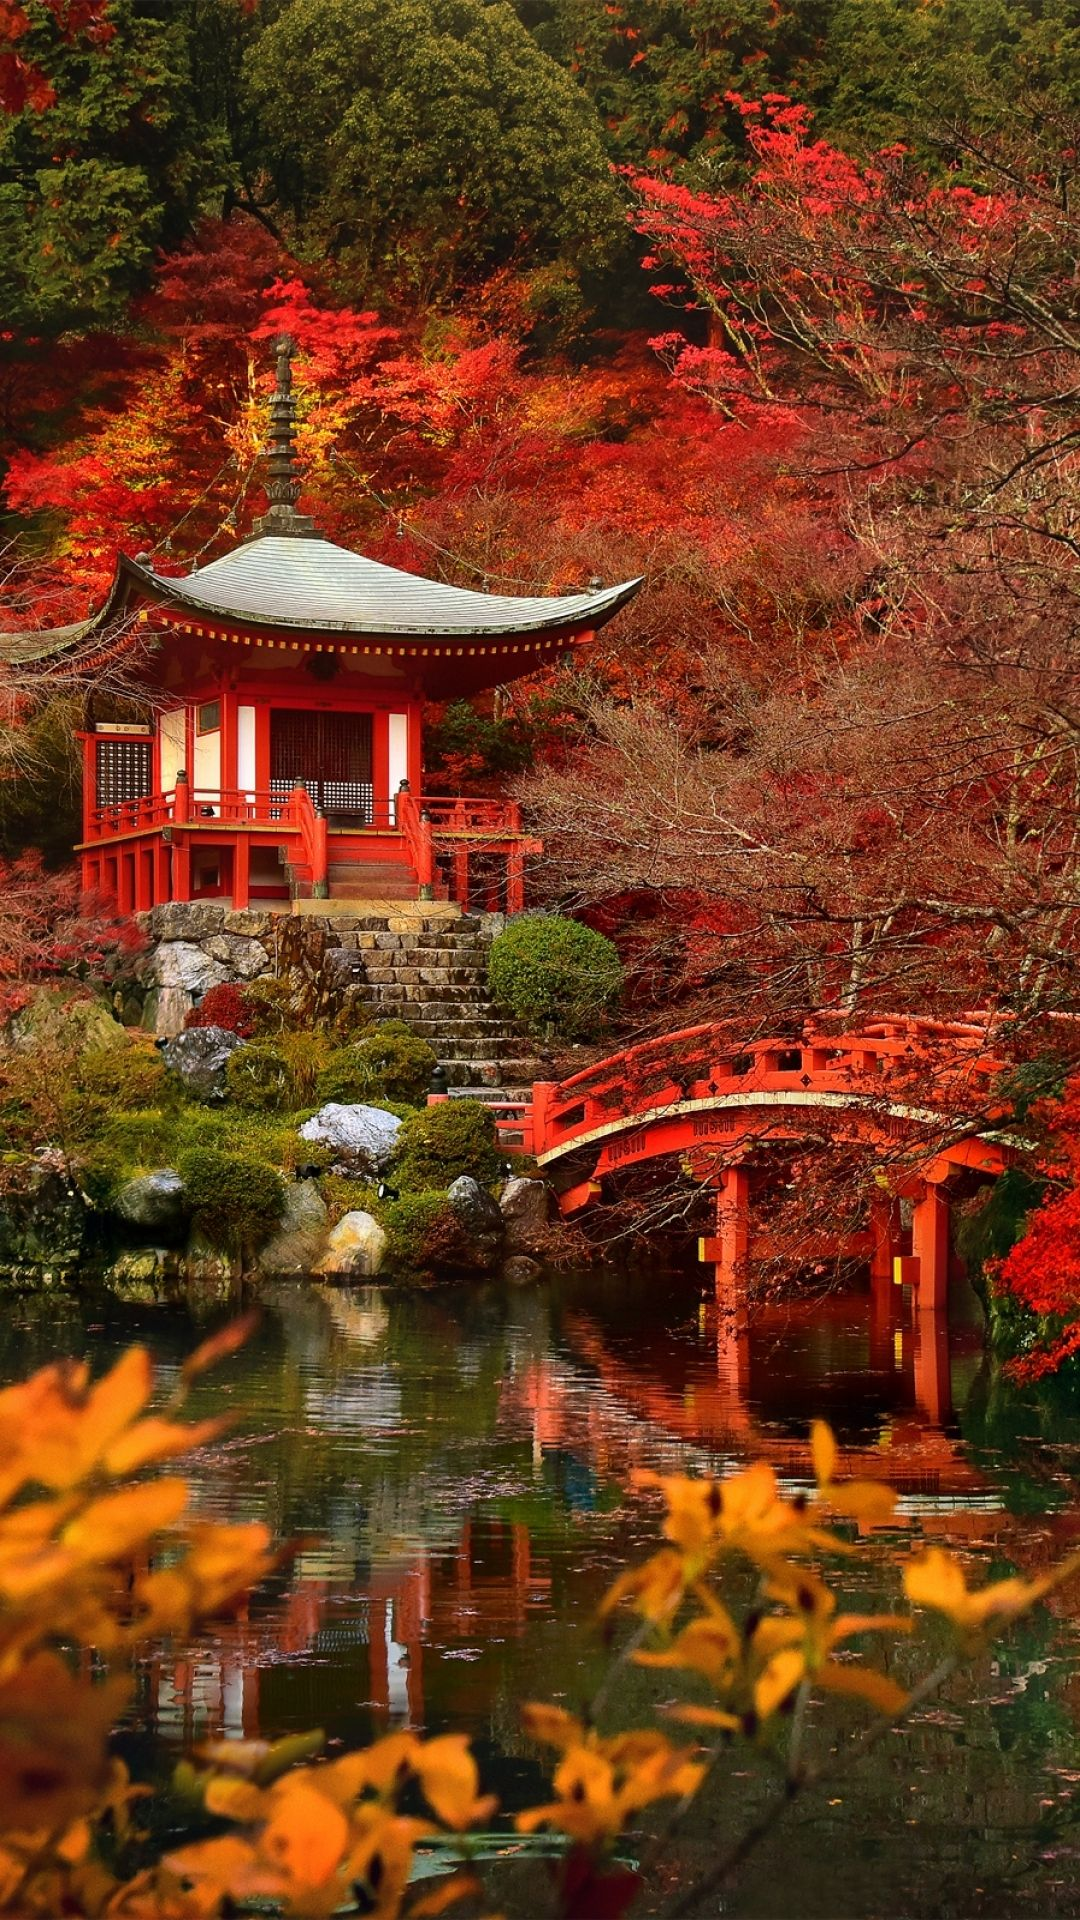 Autumn In Japan - Tap to see more beautiful nature wallpapers! - @mobile9 | iPhone 8 & iPhone X ...